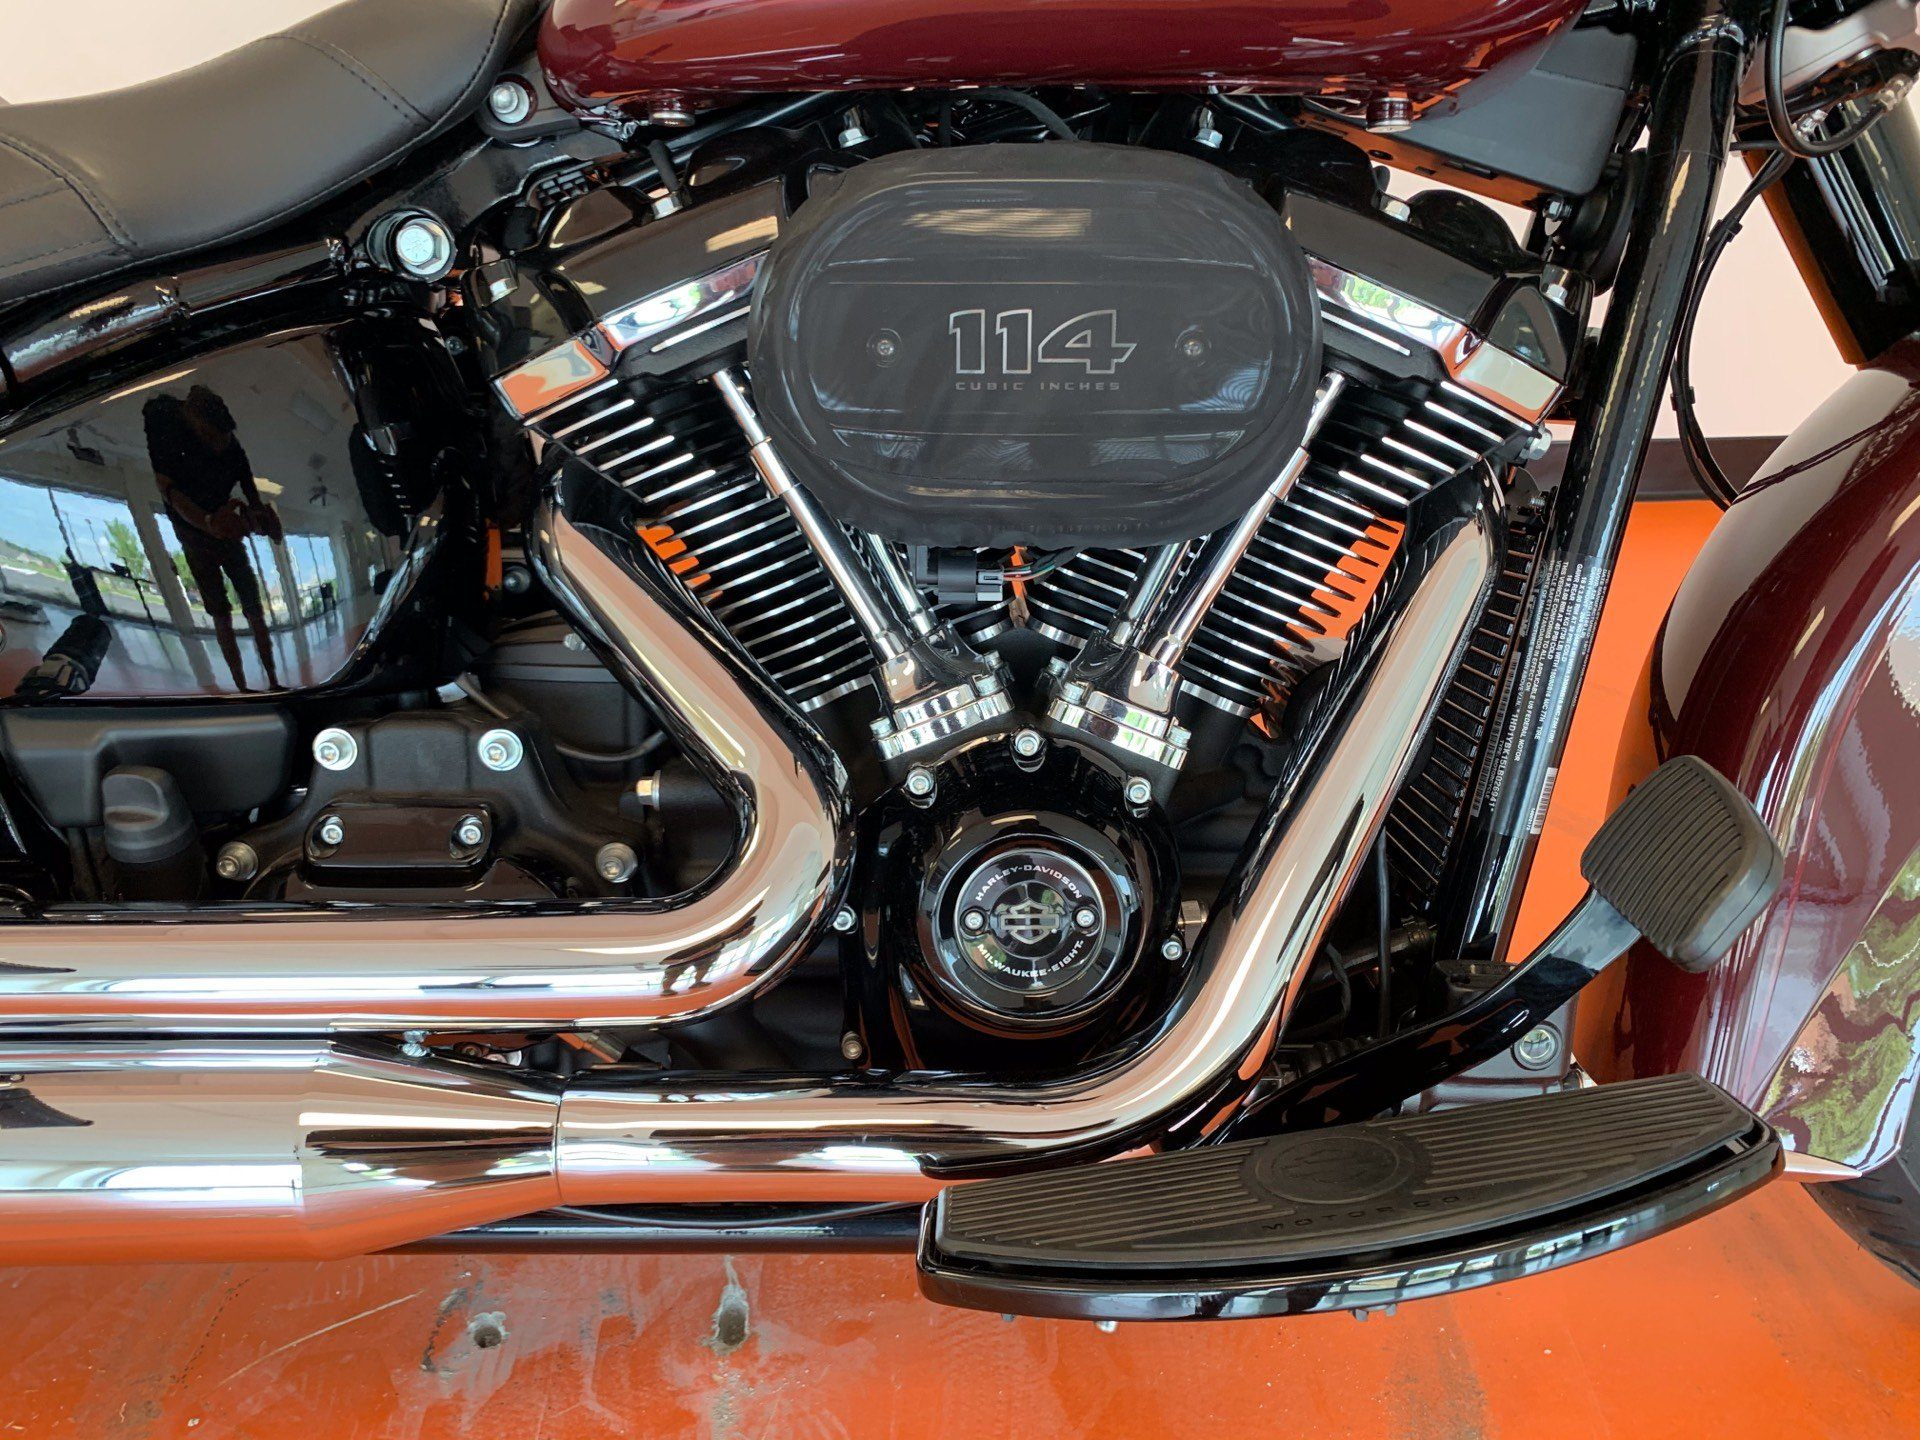 2020 Harley-Davidson Heritage Classic 114 in Dumfries, Virginia - Photo 3